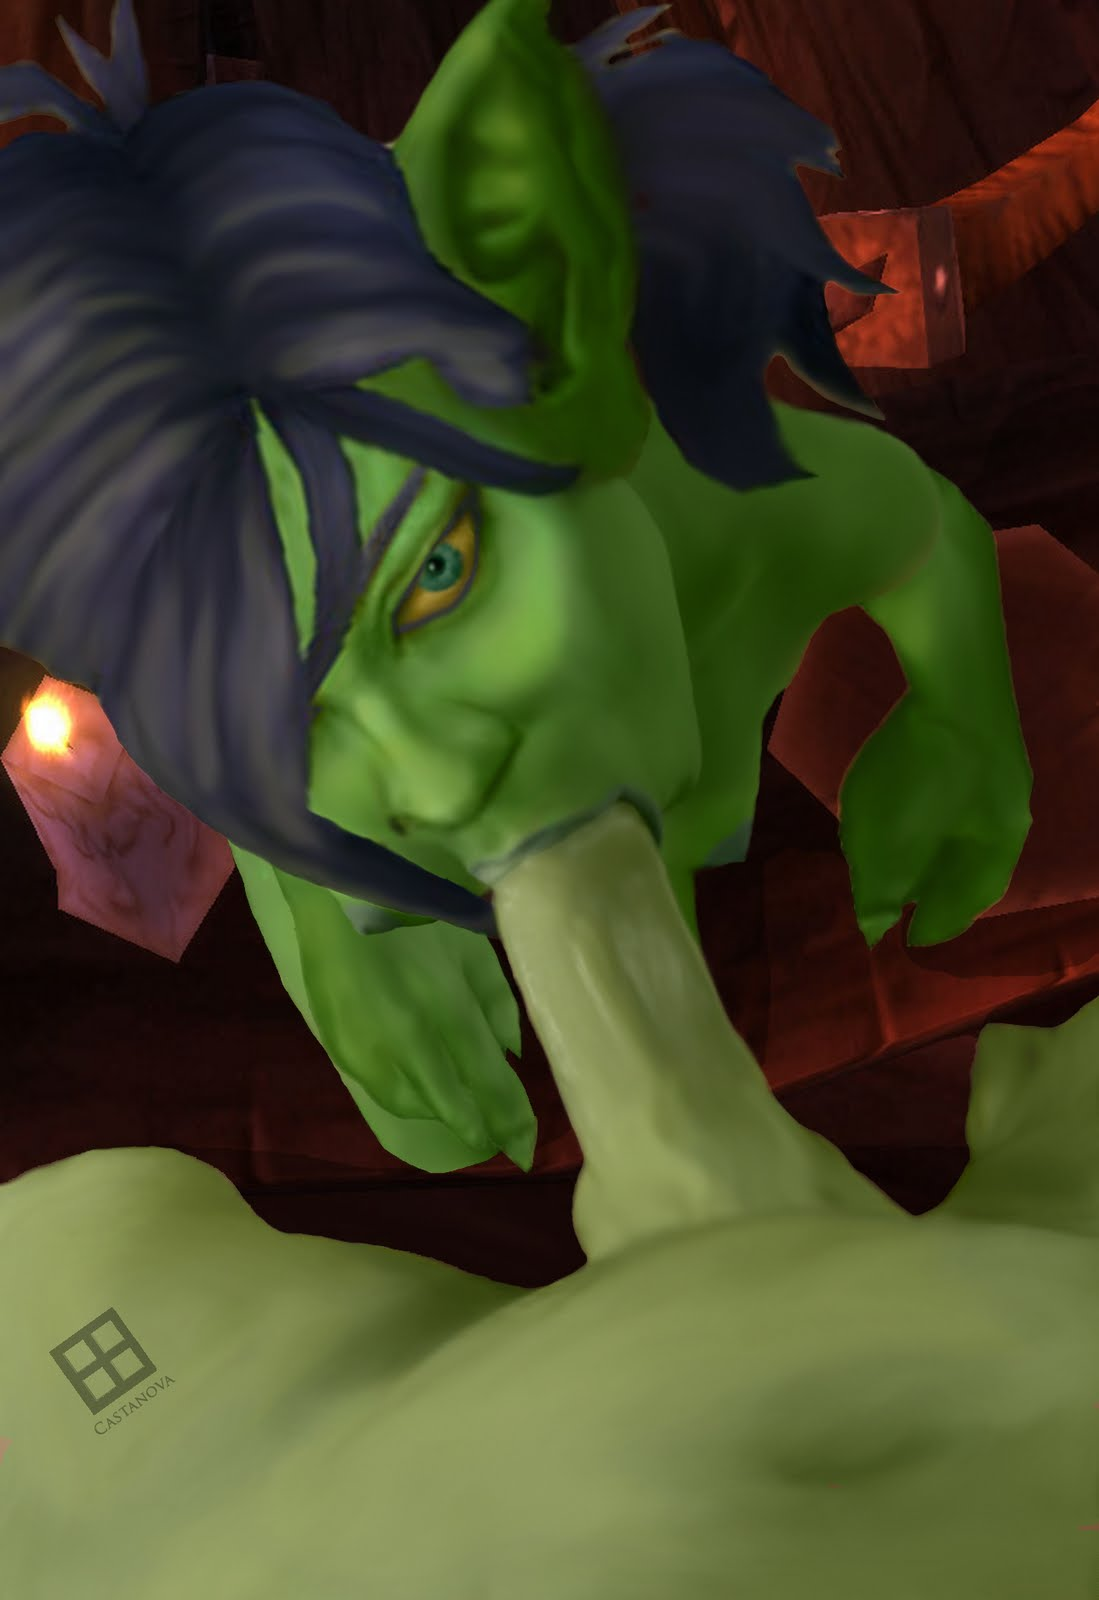 World of warcraft orc goblin hentai nudes movie